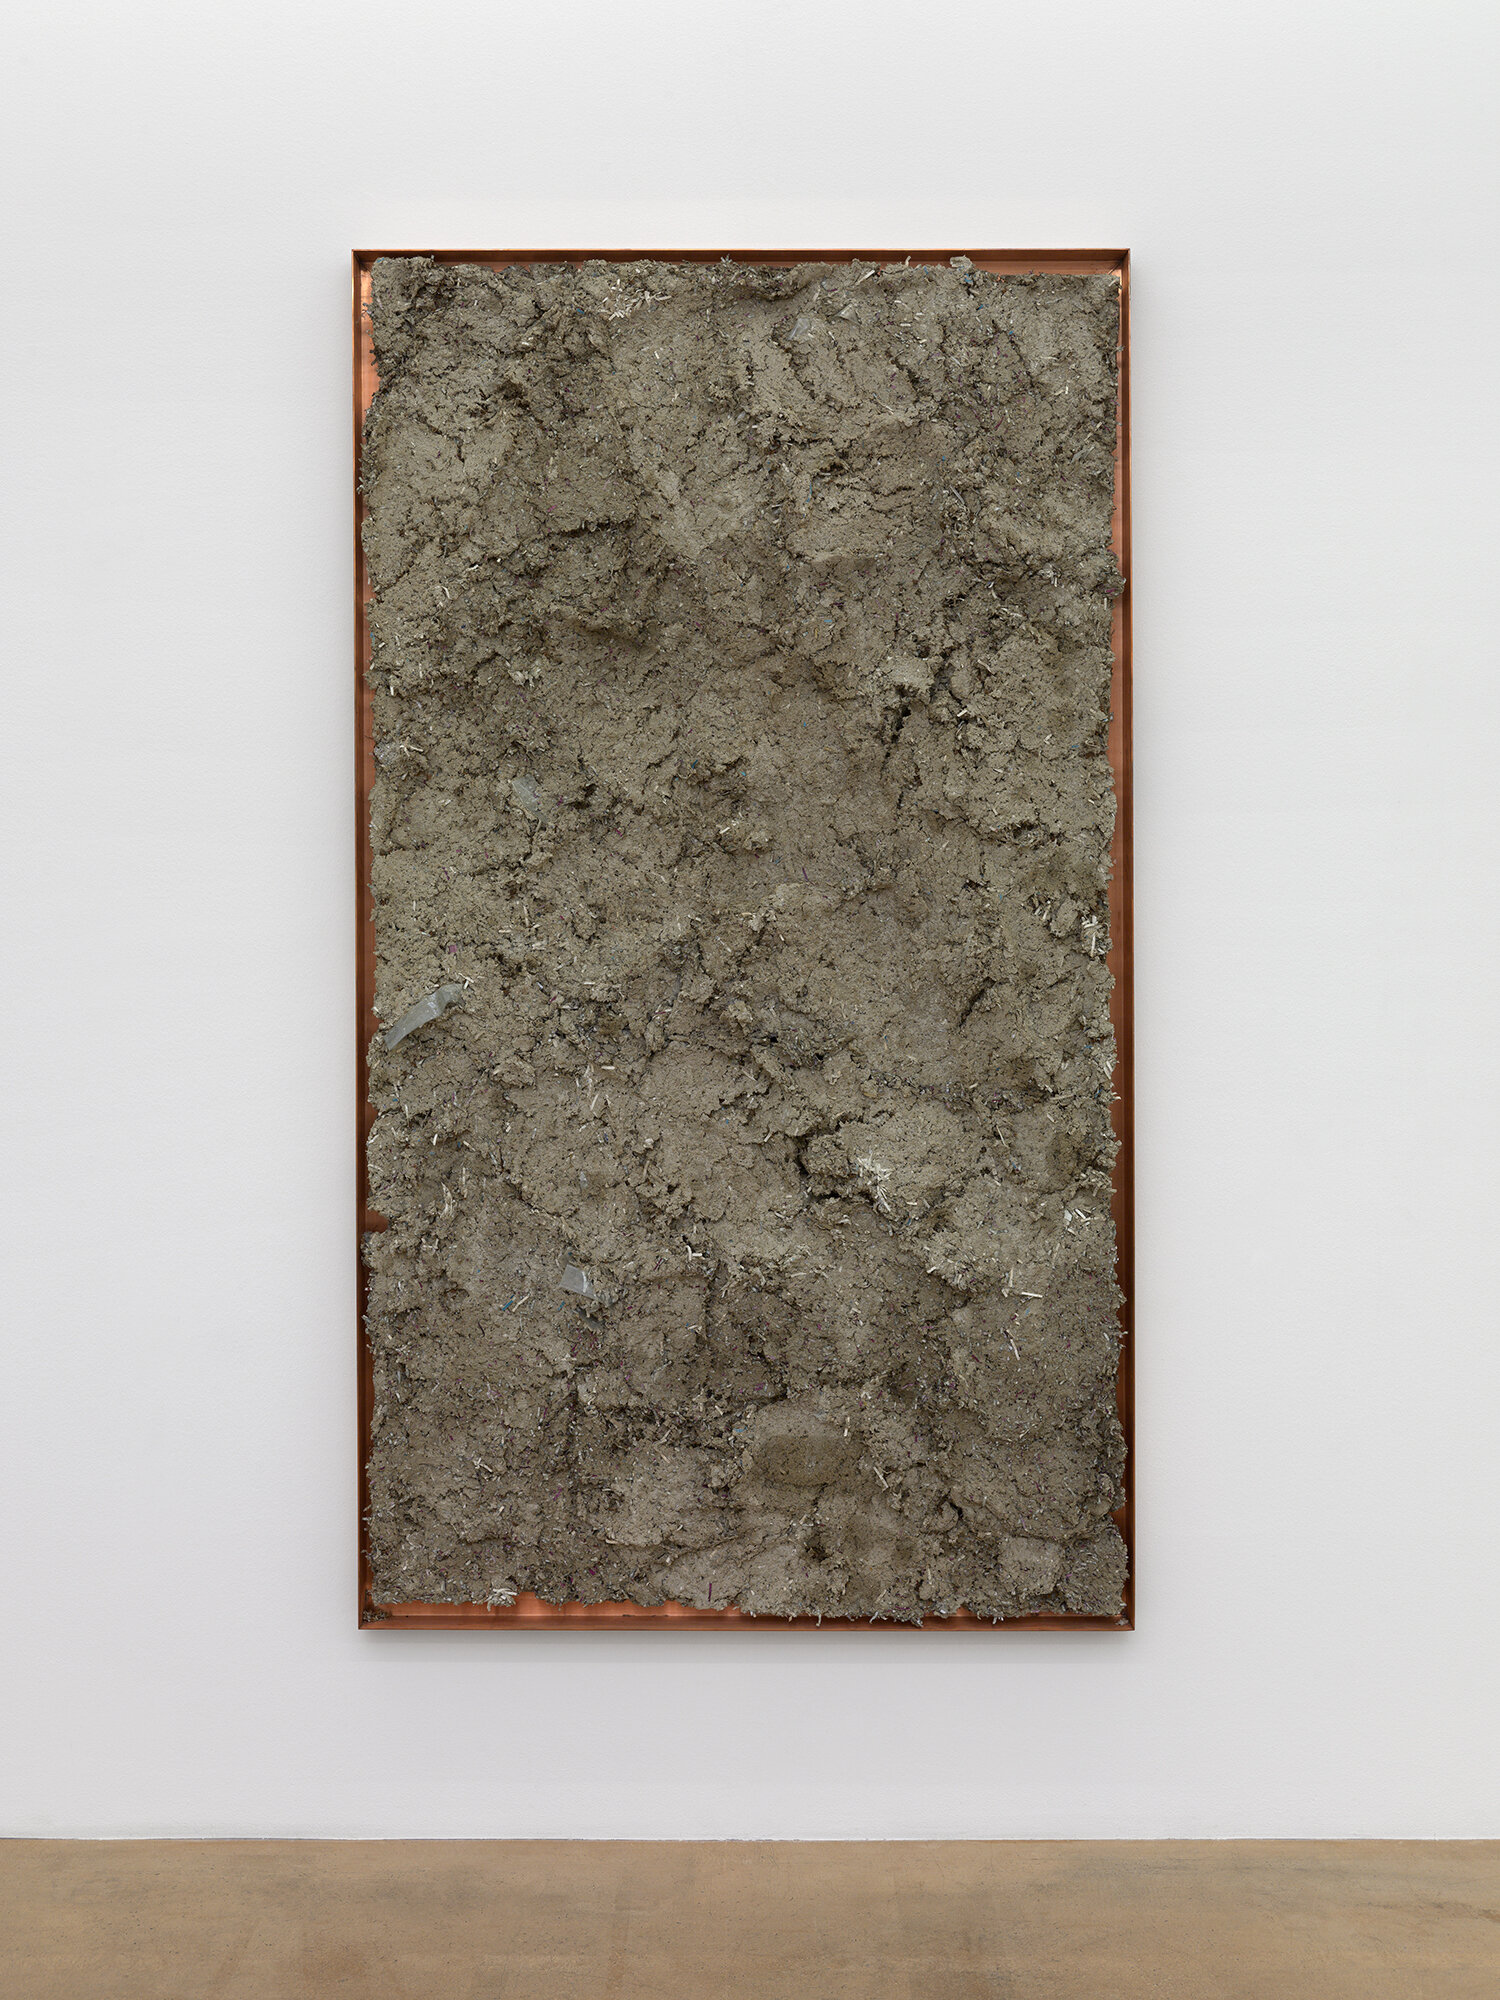 Selected Works (2012–2013/April 2, 2012–June 3, 2013)    2014   Color photographic paper, black and white photographic paper, archival inkjet papers  90 x 50 inches   Musée d'art moderne et contemporain, 2019